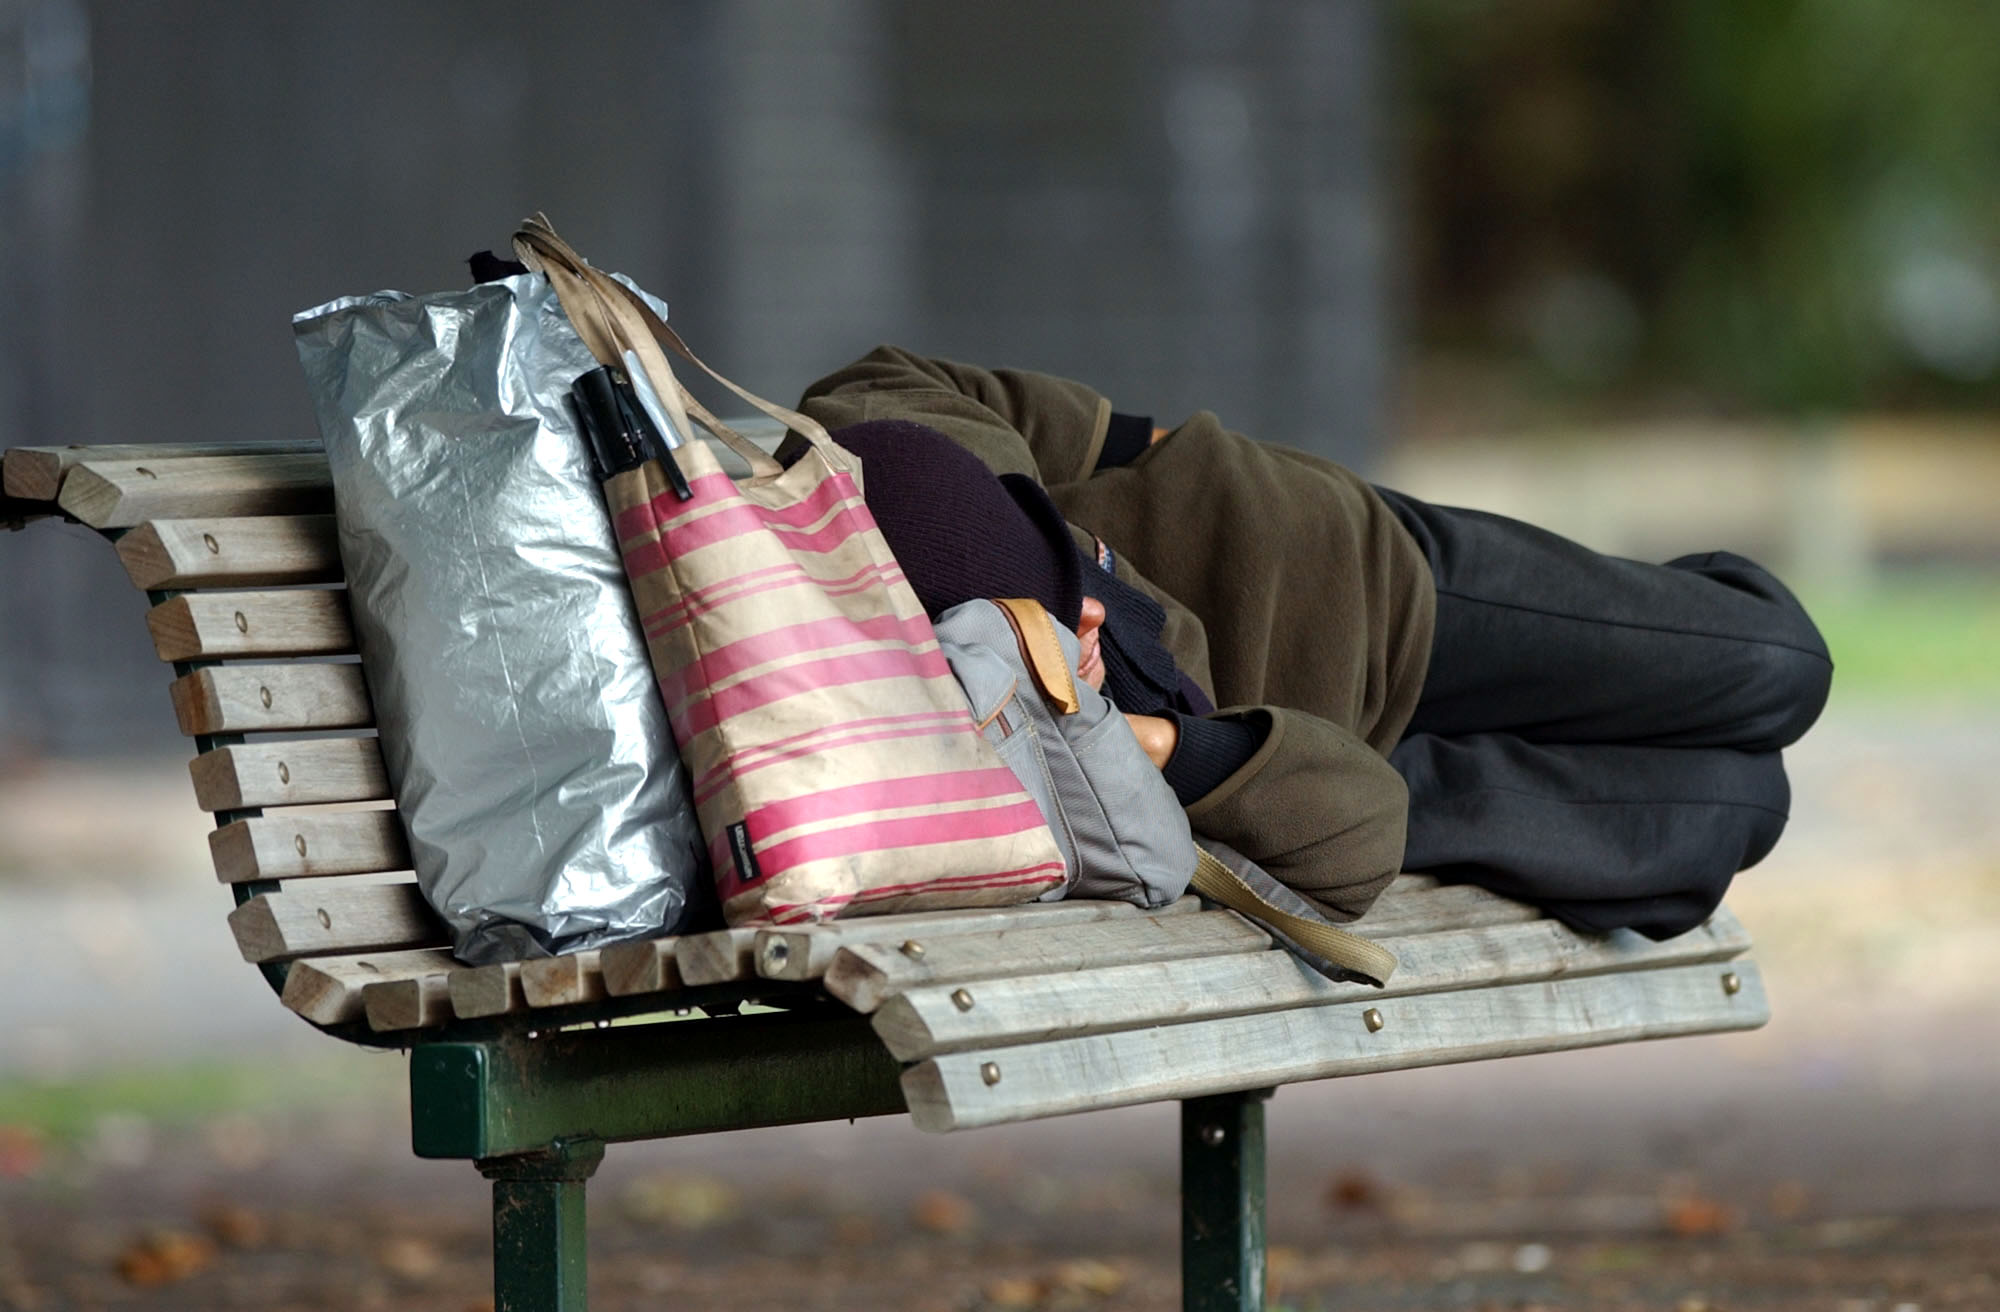 A homeless person sleeping on a park bench. (Credit: Dean Purcell/Getty Images)